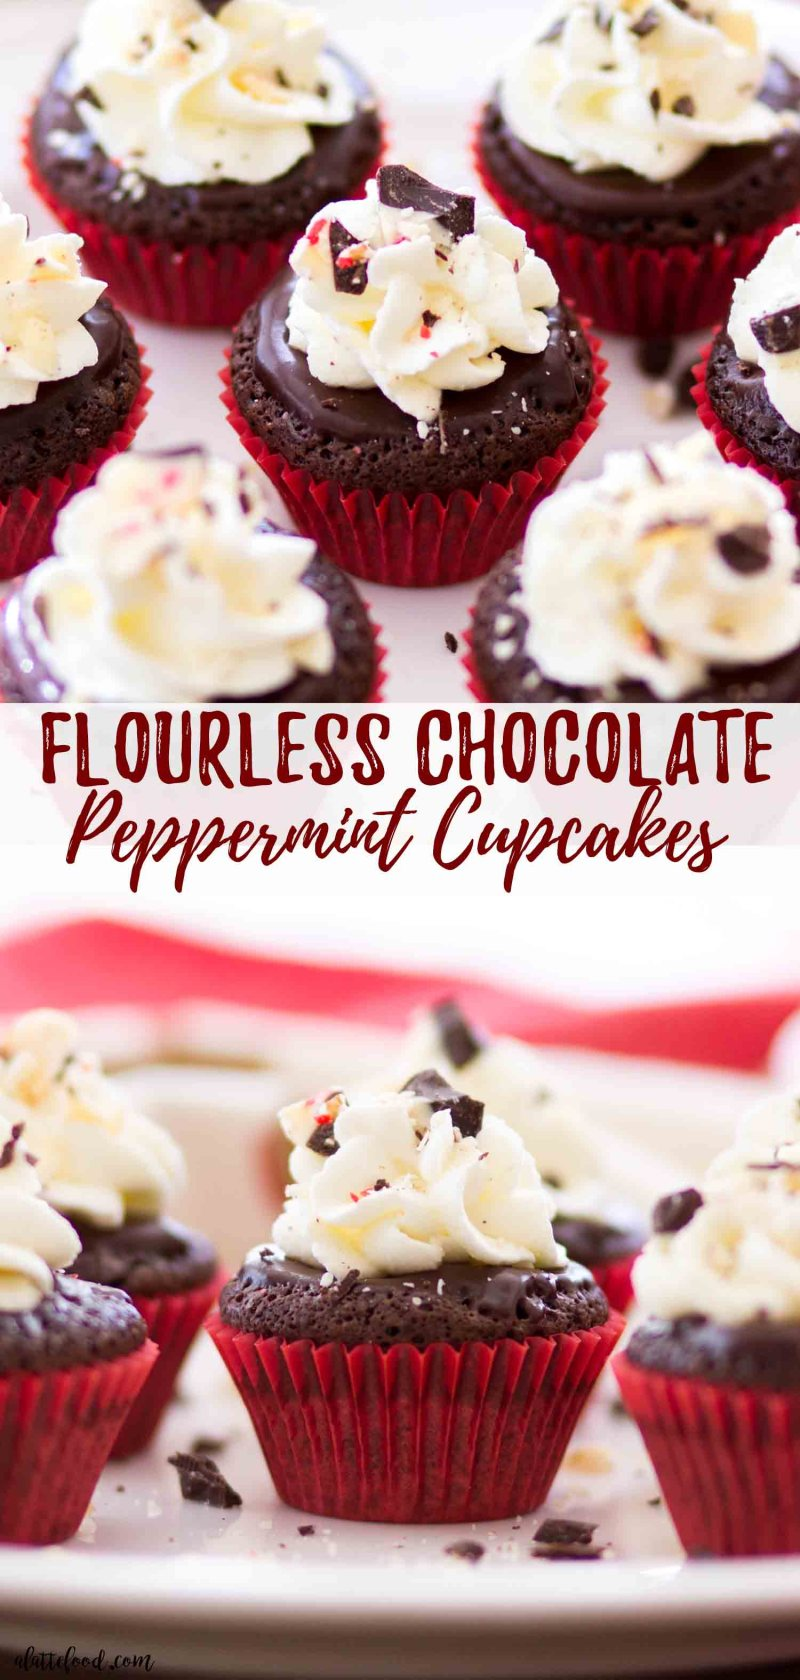 The best flourless chocolate cake recipe is turned into a flourless chocolate peppermint cupcake recipe for the holidays!